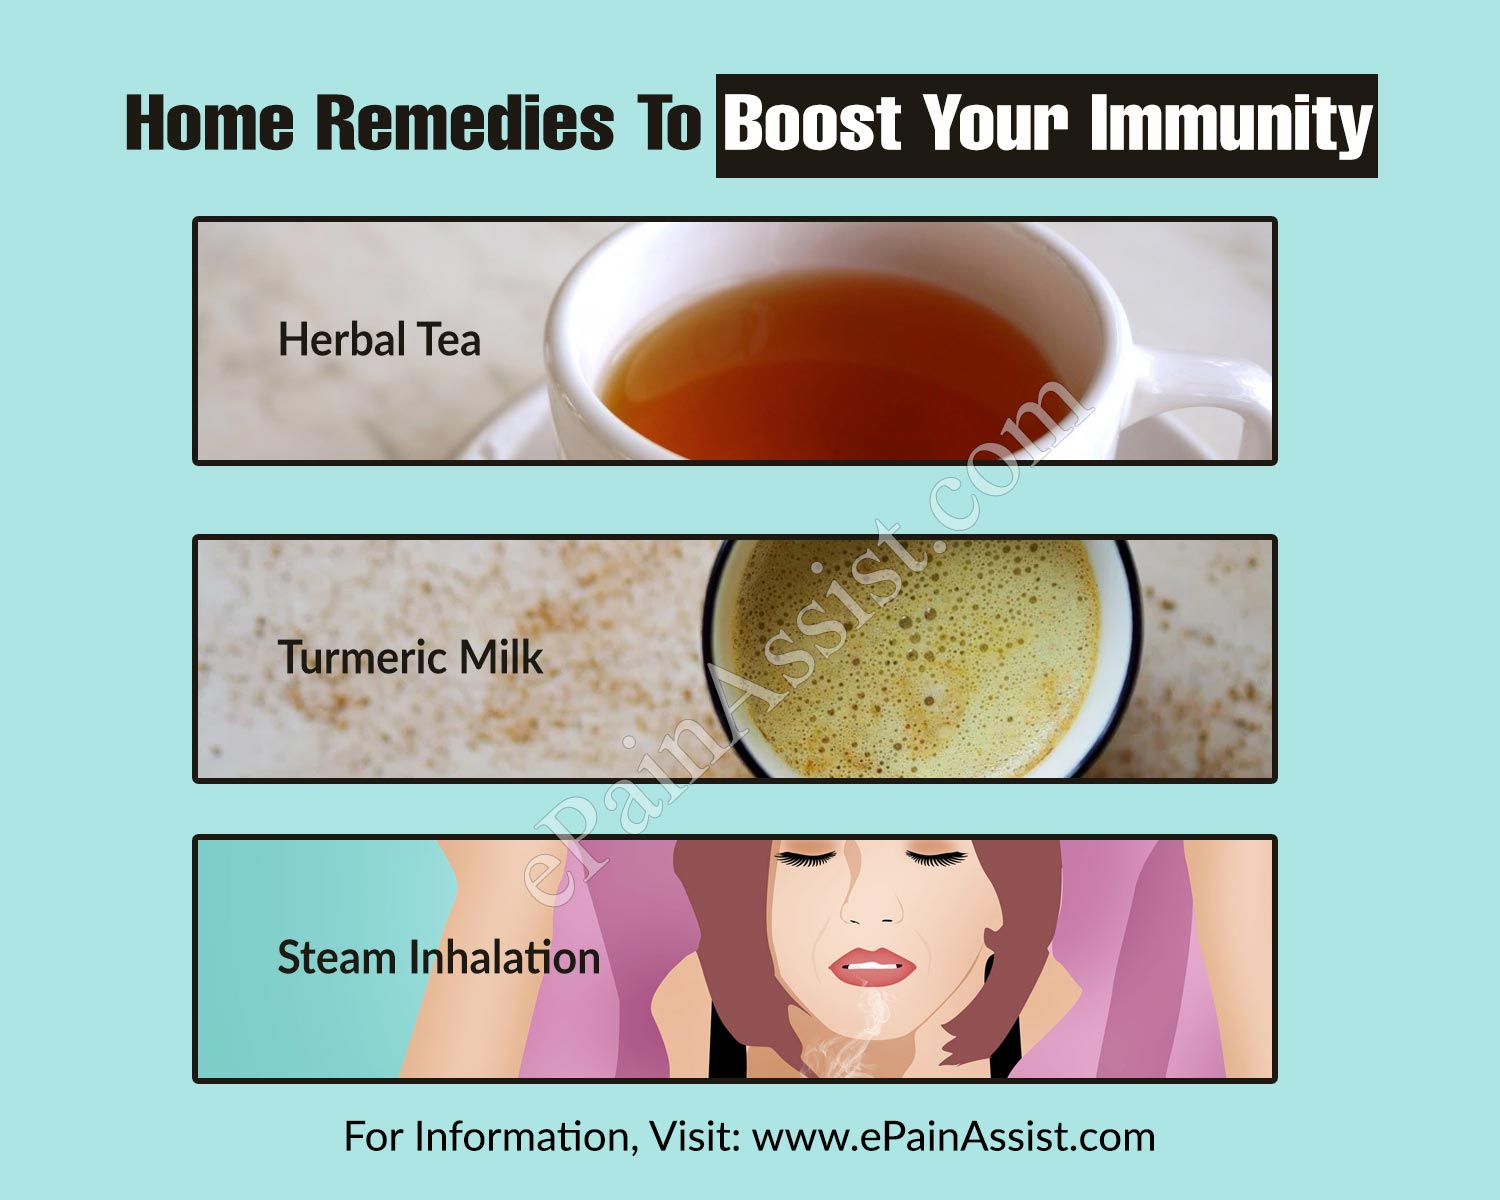 Home Remedies To Boost Your Immunity